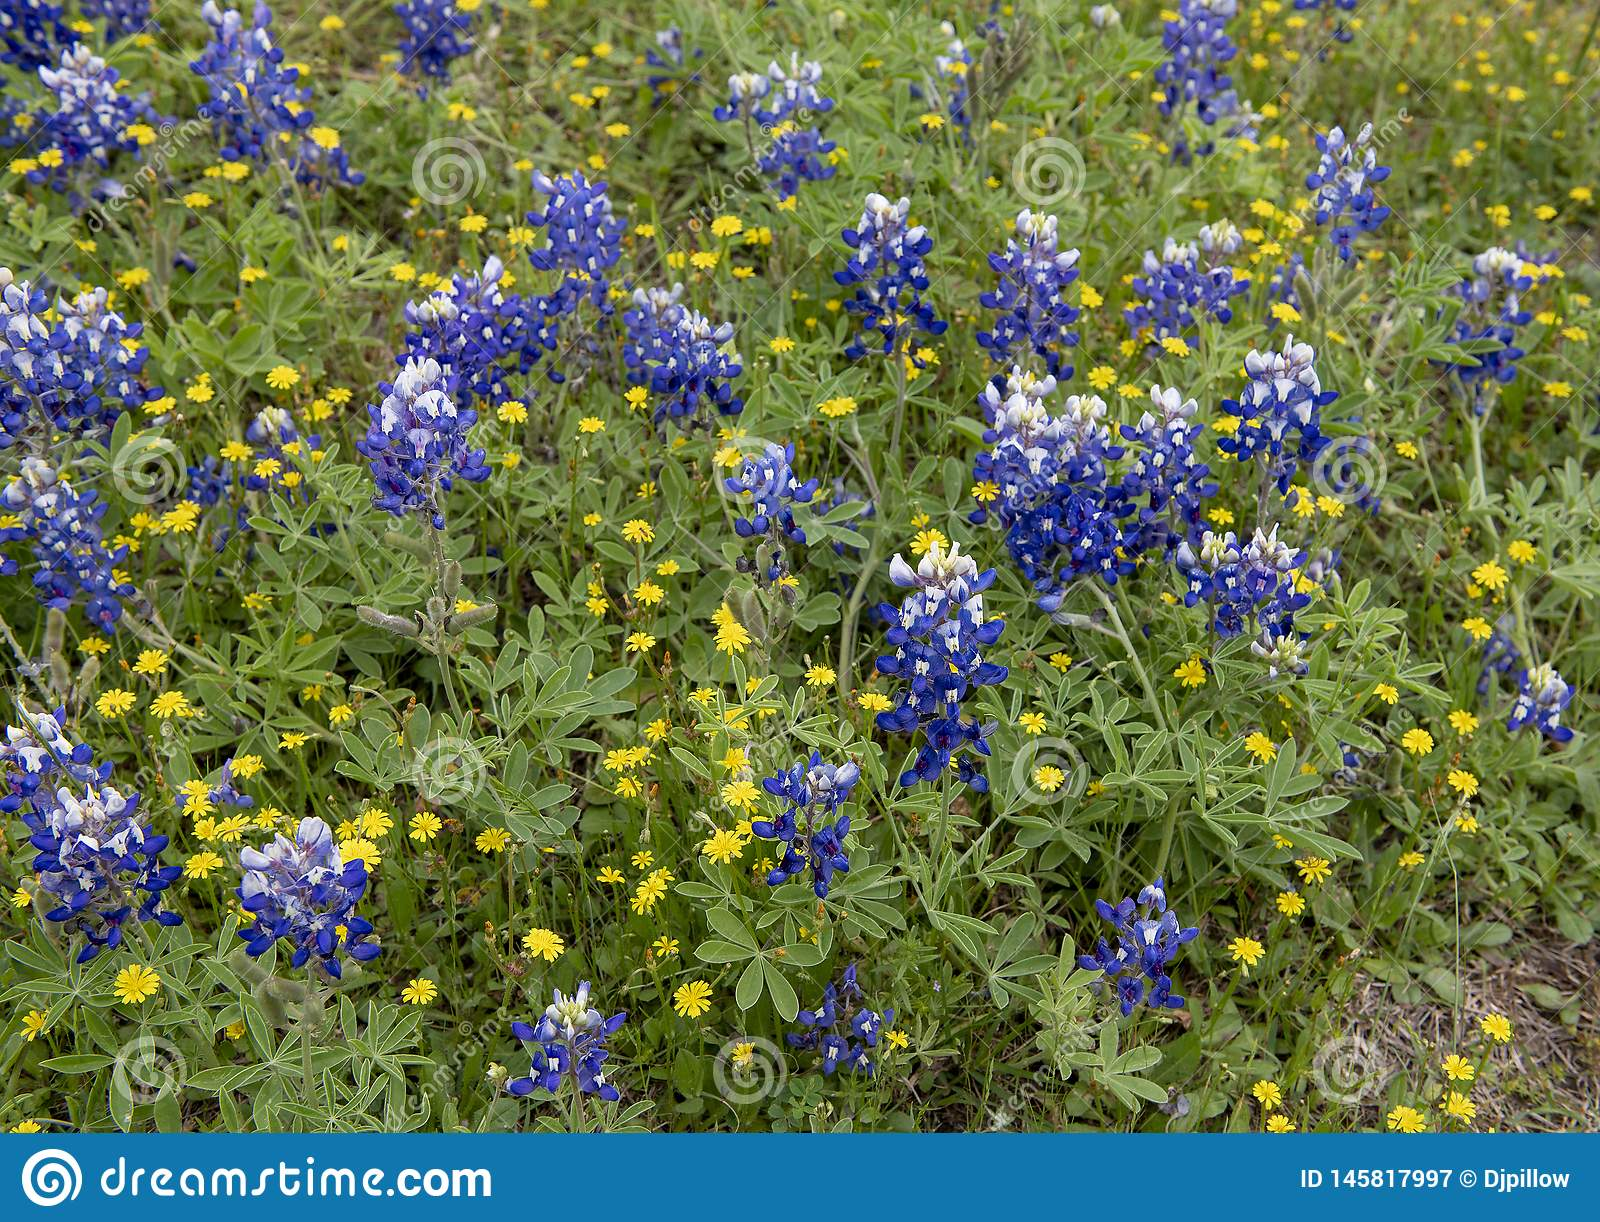 Bluebonnets And Dyc S Along The Bluebonnet Trail In Ennis Texas